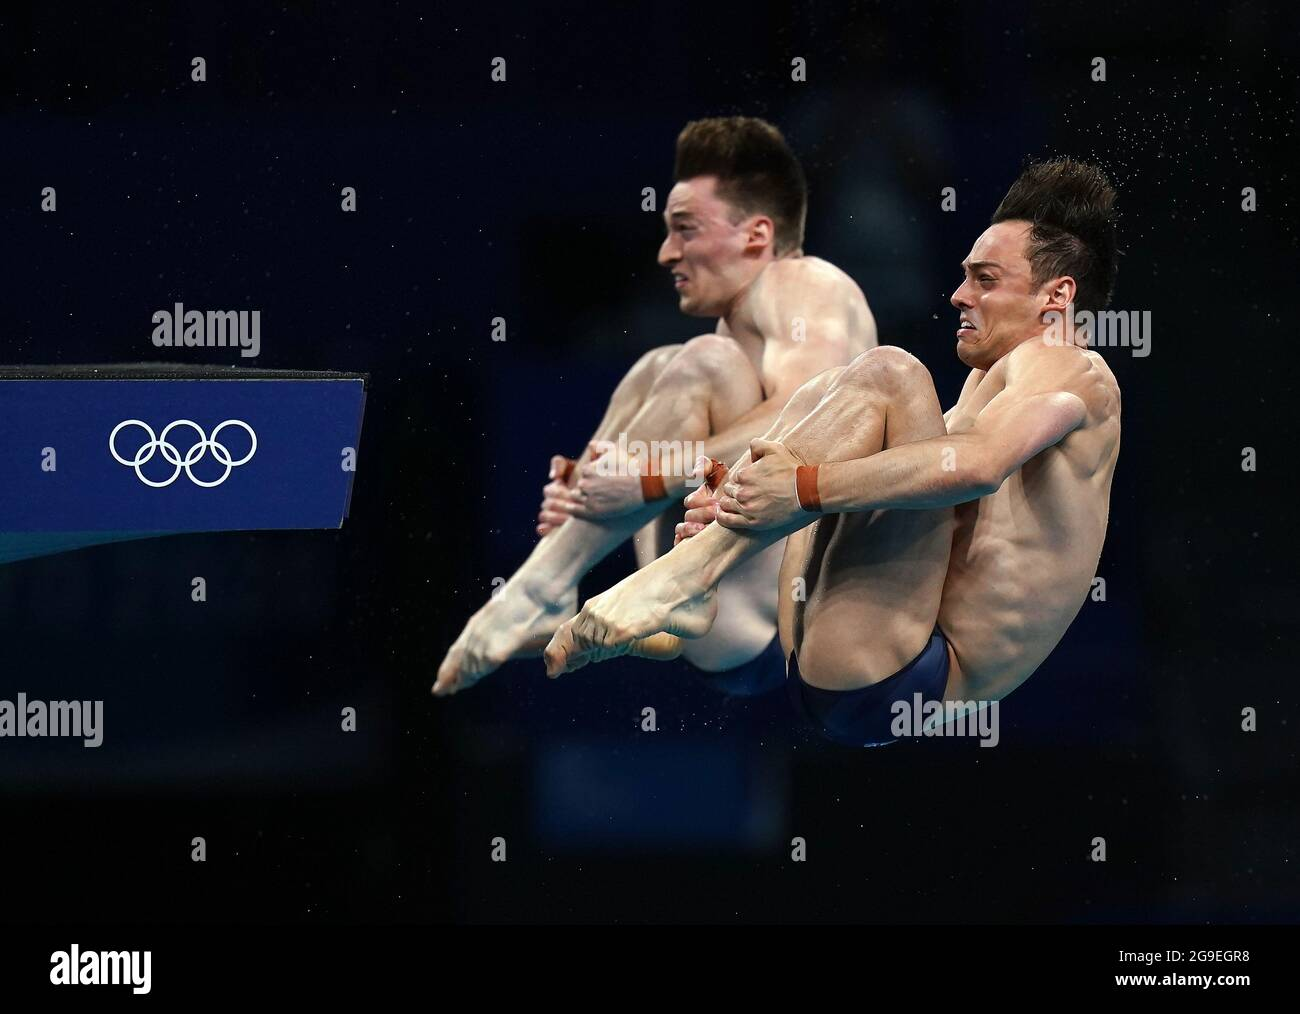 Great Britain's Tom Daley (right) and Matty Lee during the Men's Synchronised 10m Platform Final at the Tokyo Aquatics Centre on the third day of the Tokyo 2020 Olympic Games in Japan. Picture date: Monday July 26, 2021. Stock Photo